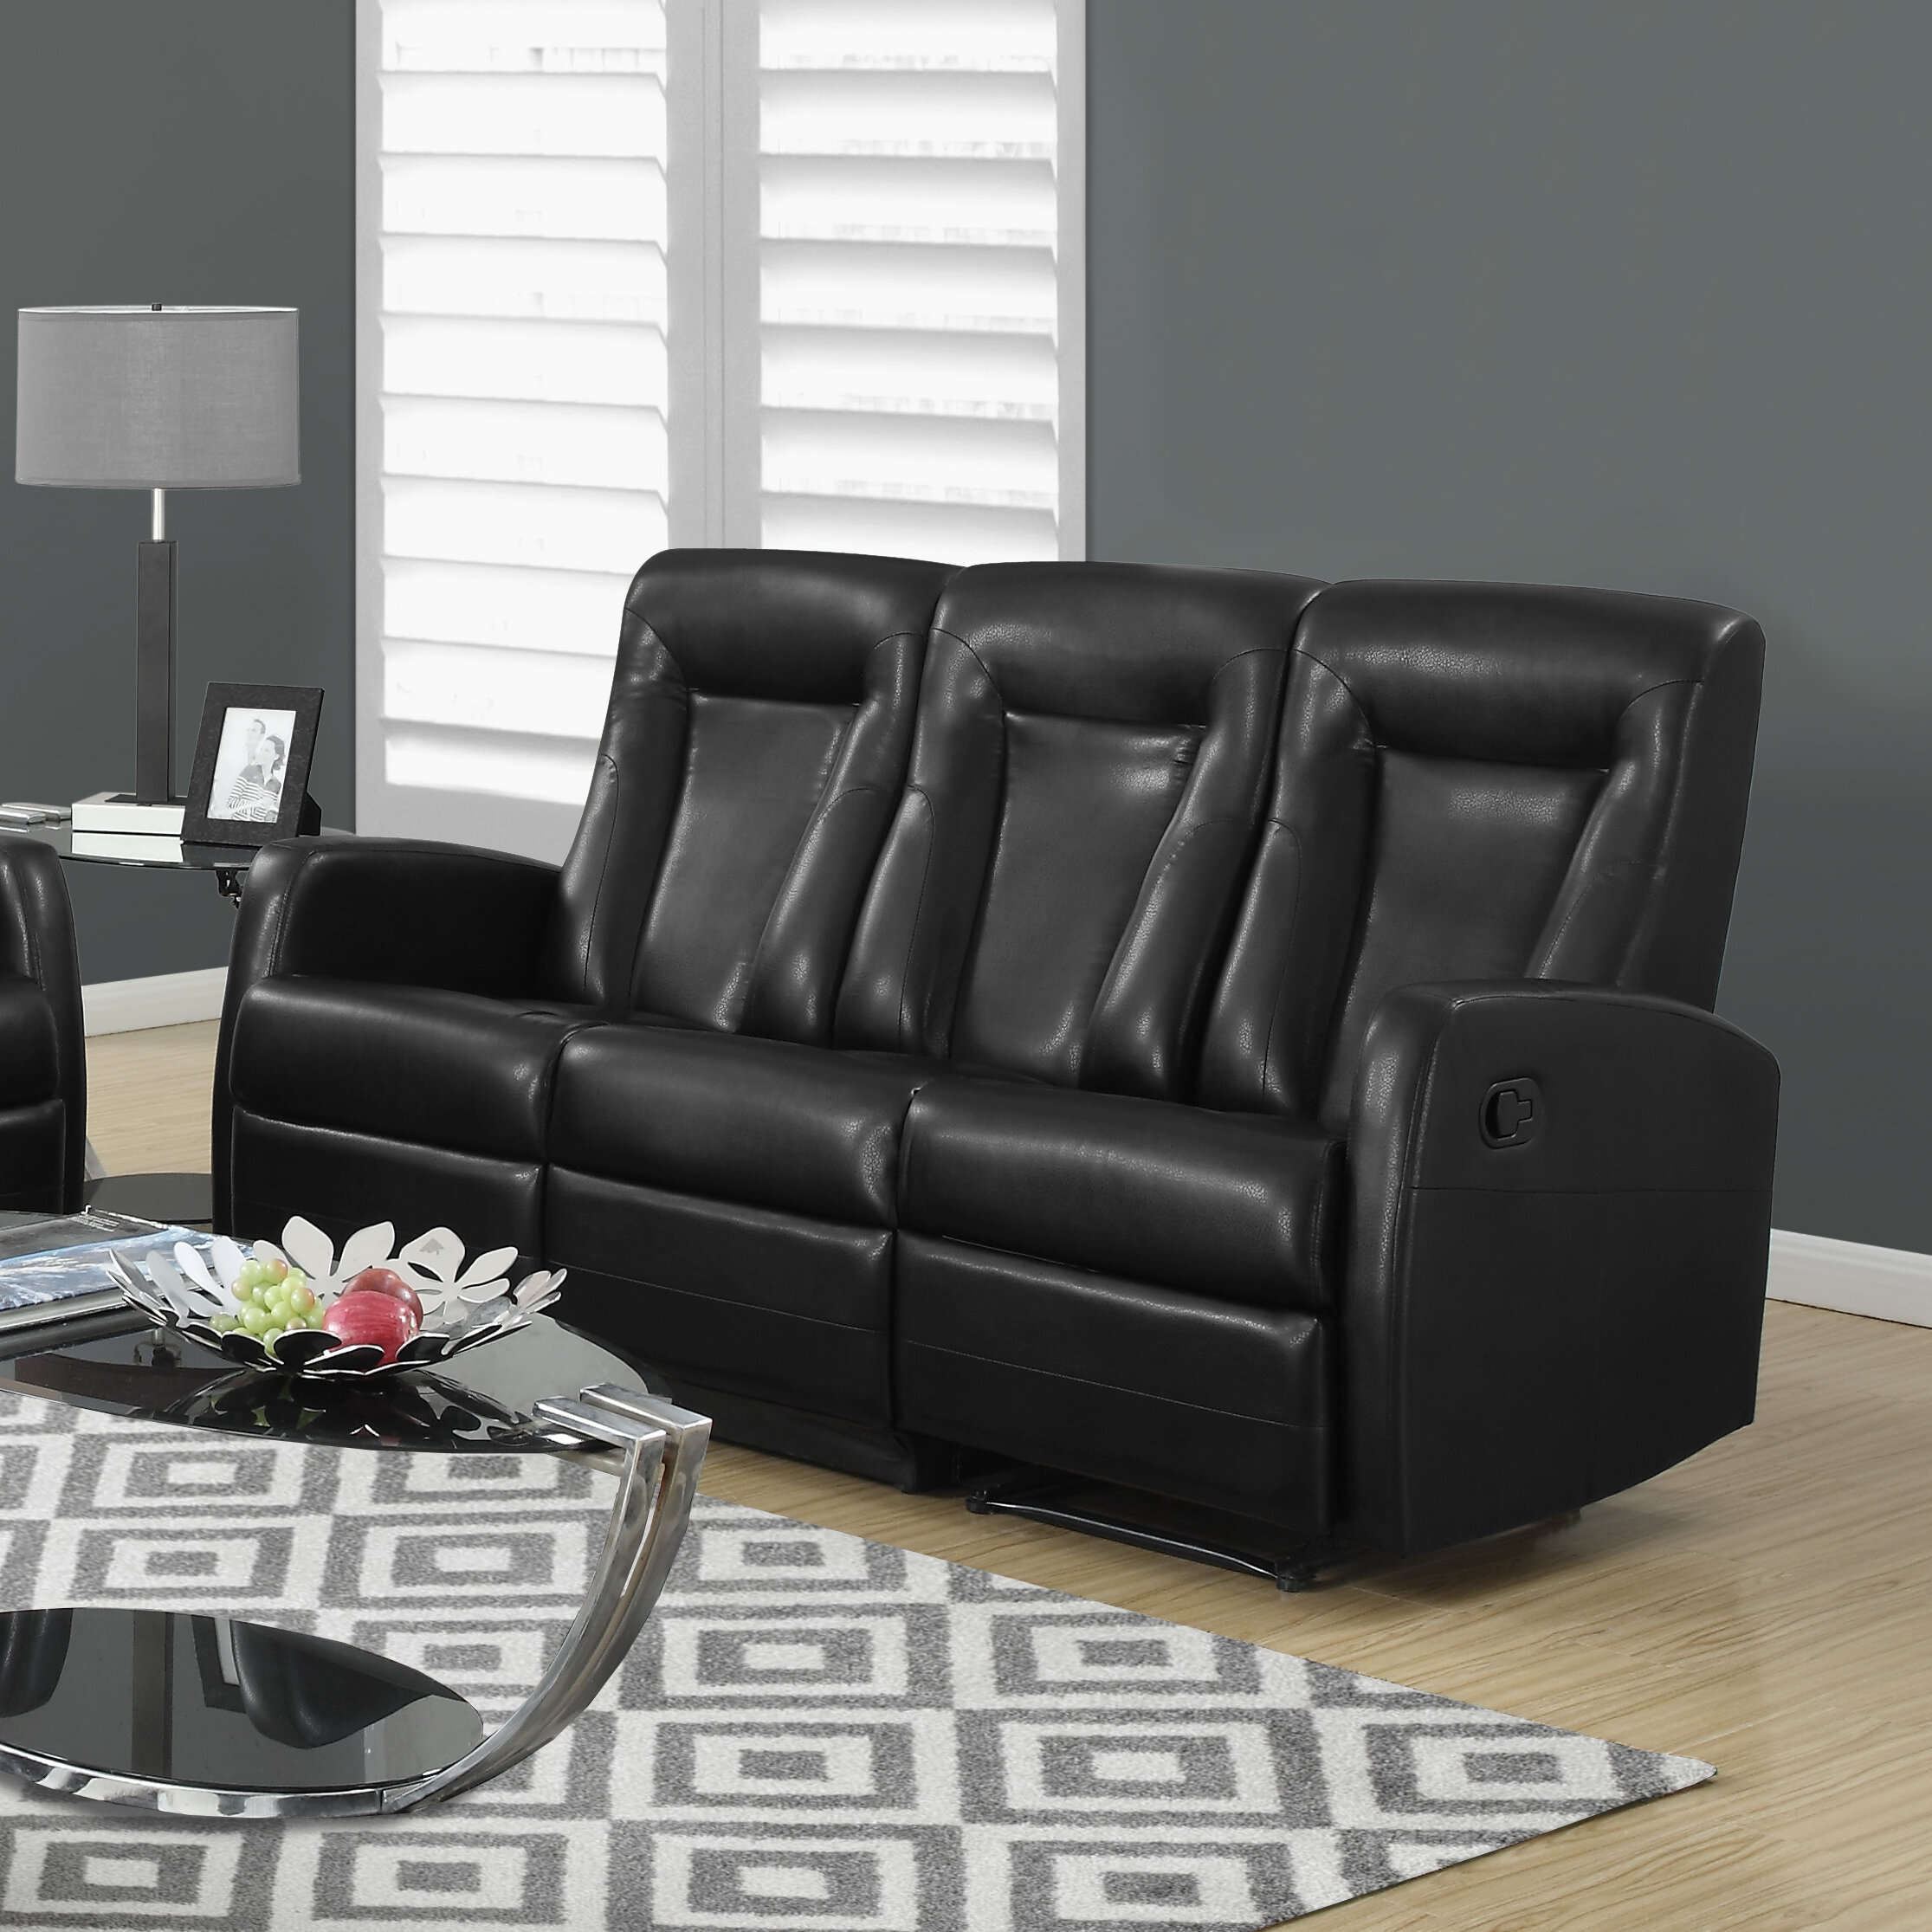 Monarch Specialties Inc. Bonded Leather Reclining Sofa U0026 Reviews | Wayfair